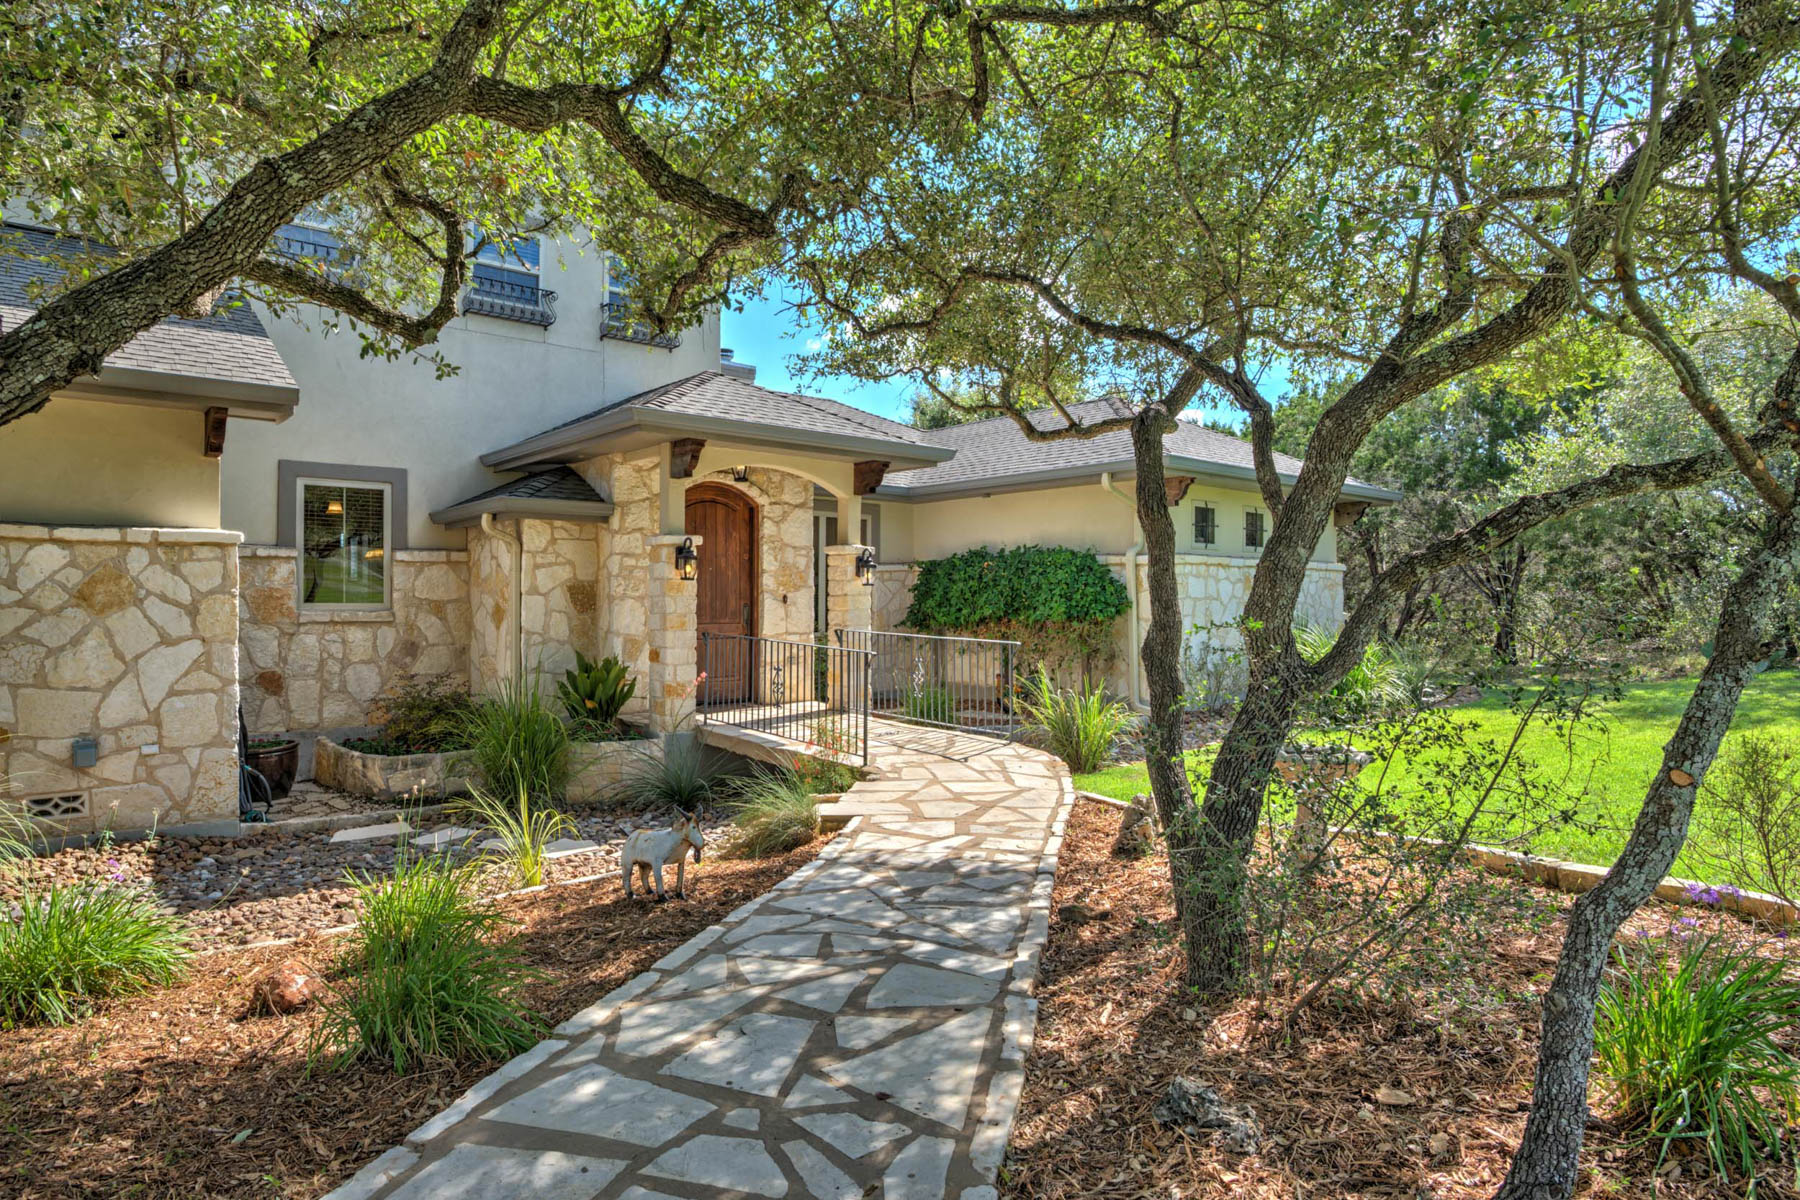 Single Family Home for Sale at Picturesque Texas Hill Country Views Abound 263 Westin Hills New Braunfels, Texas 78132 United States